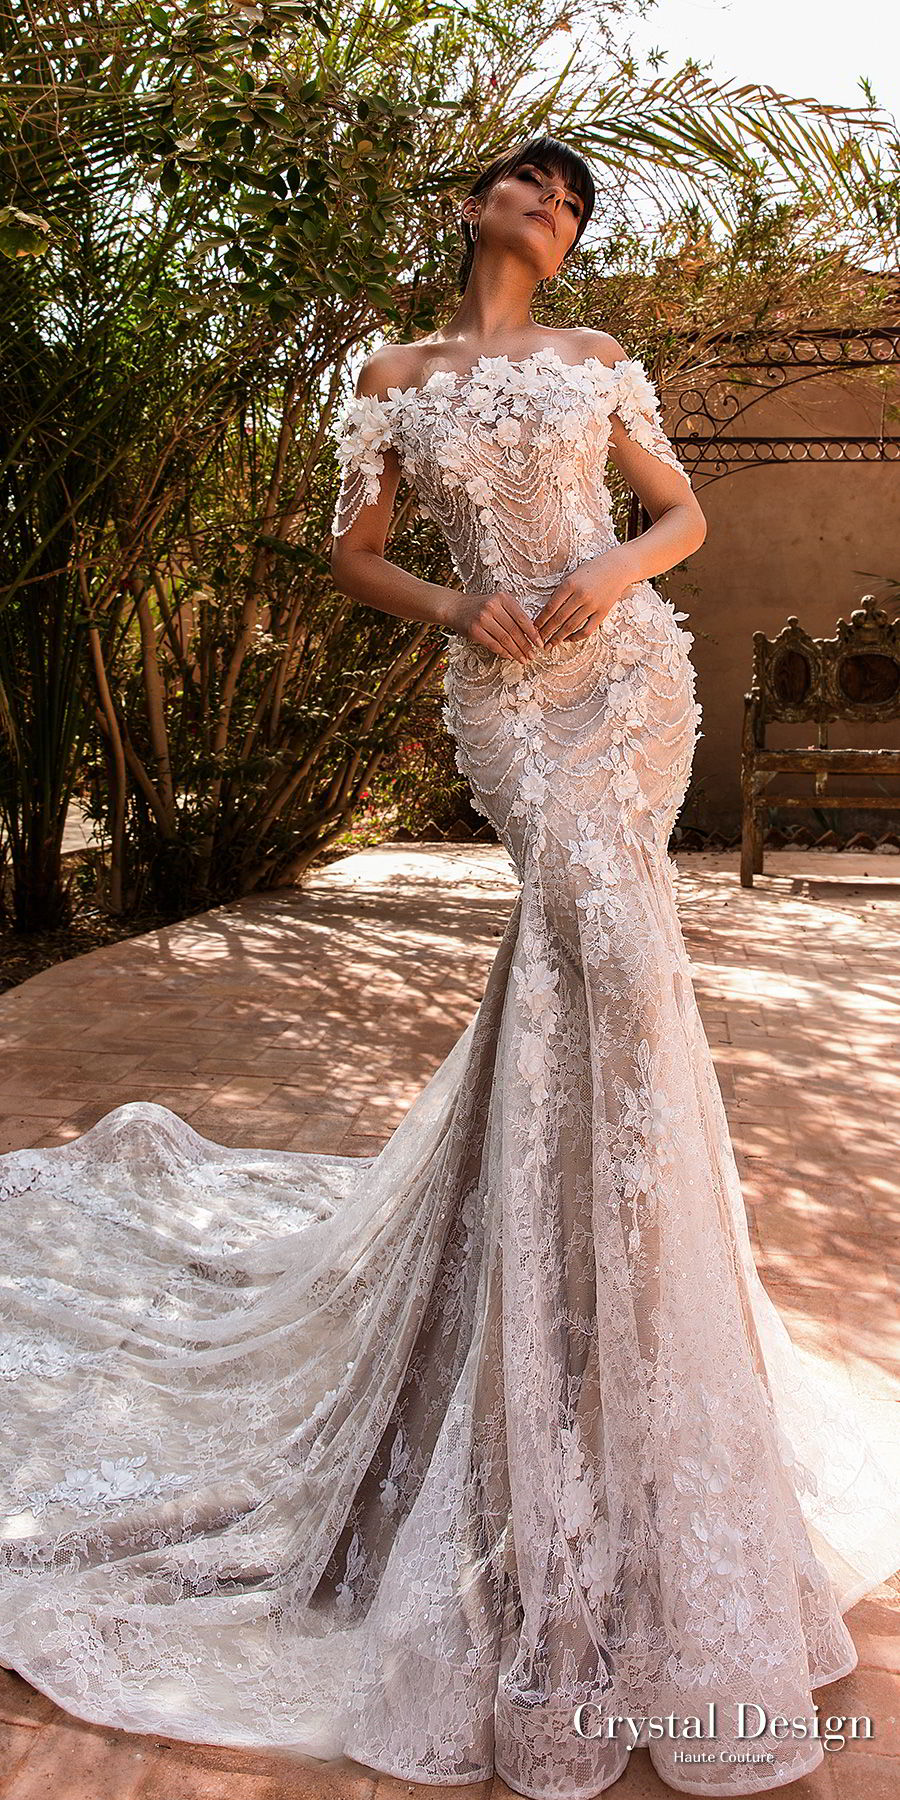 crystal design 2018 off the shoulder straight across neck full embellishment romantic fit and flare wedding dress chapel train (grace) mv